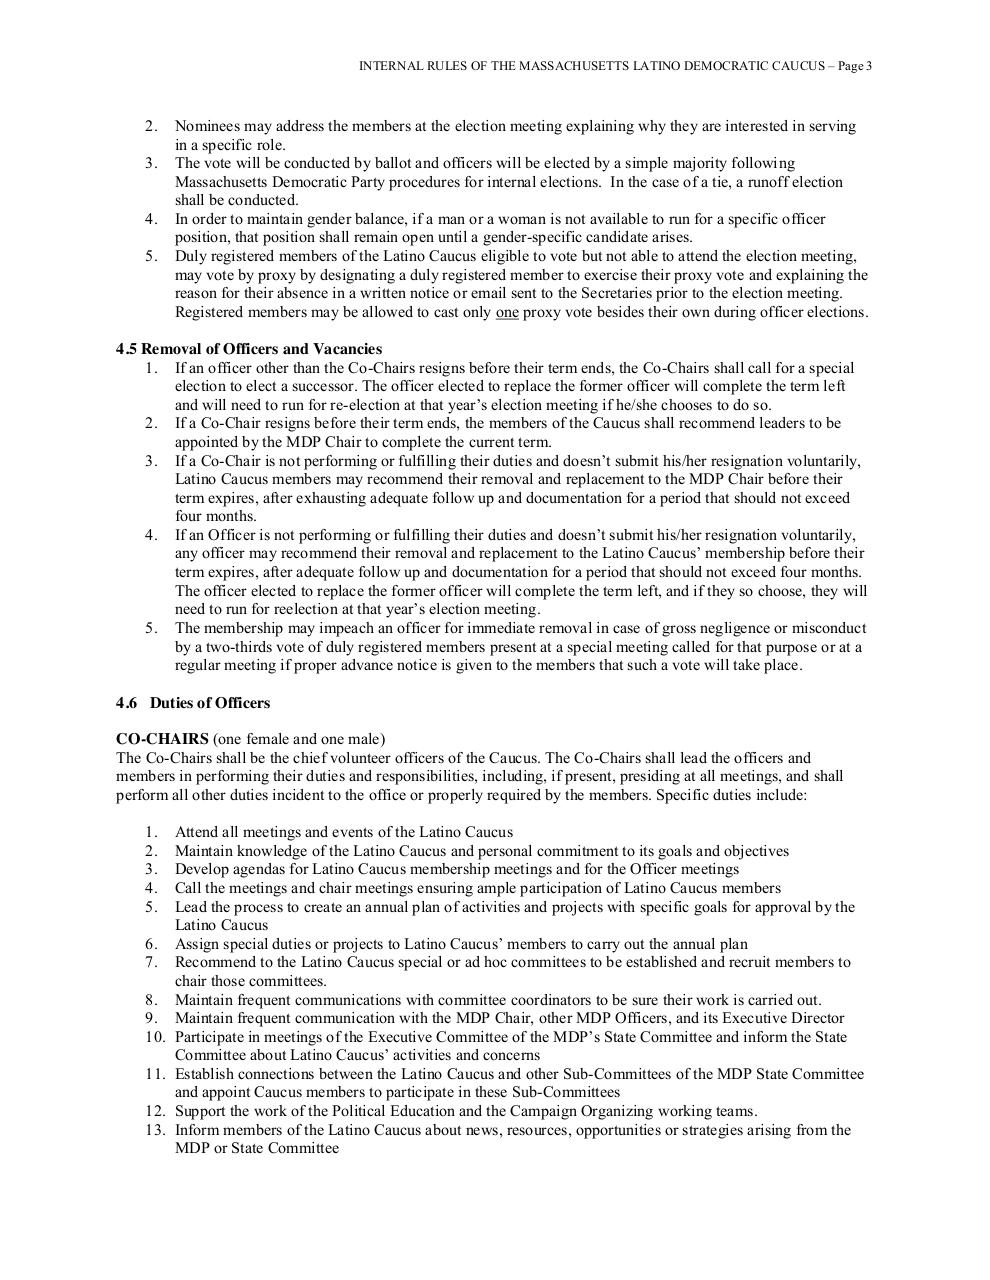 MA Latino Democratic Caucus  -Internal Rules - Final.pdf - page 3/6